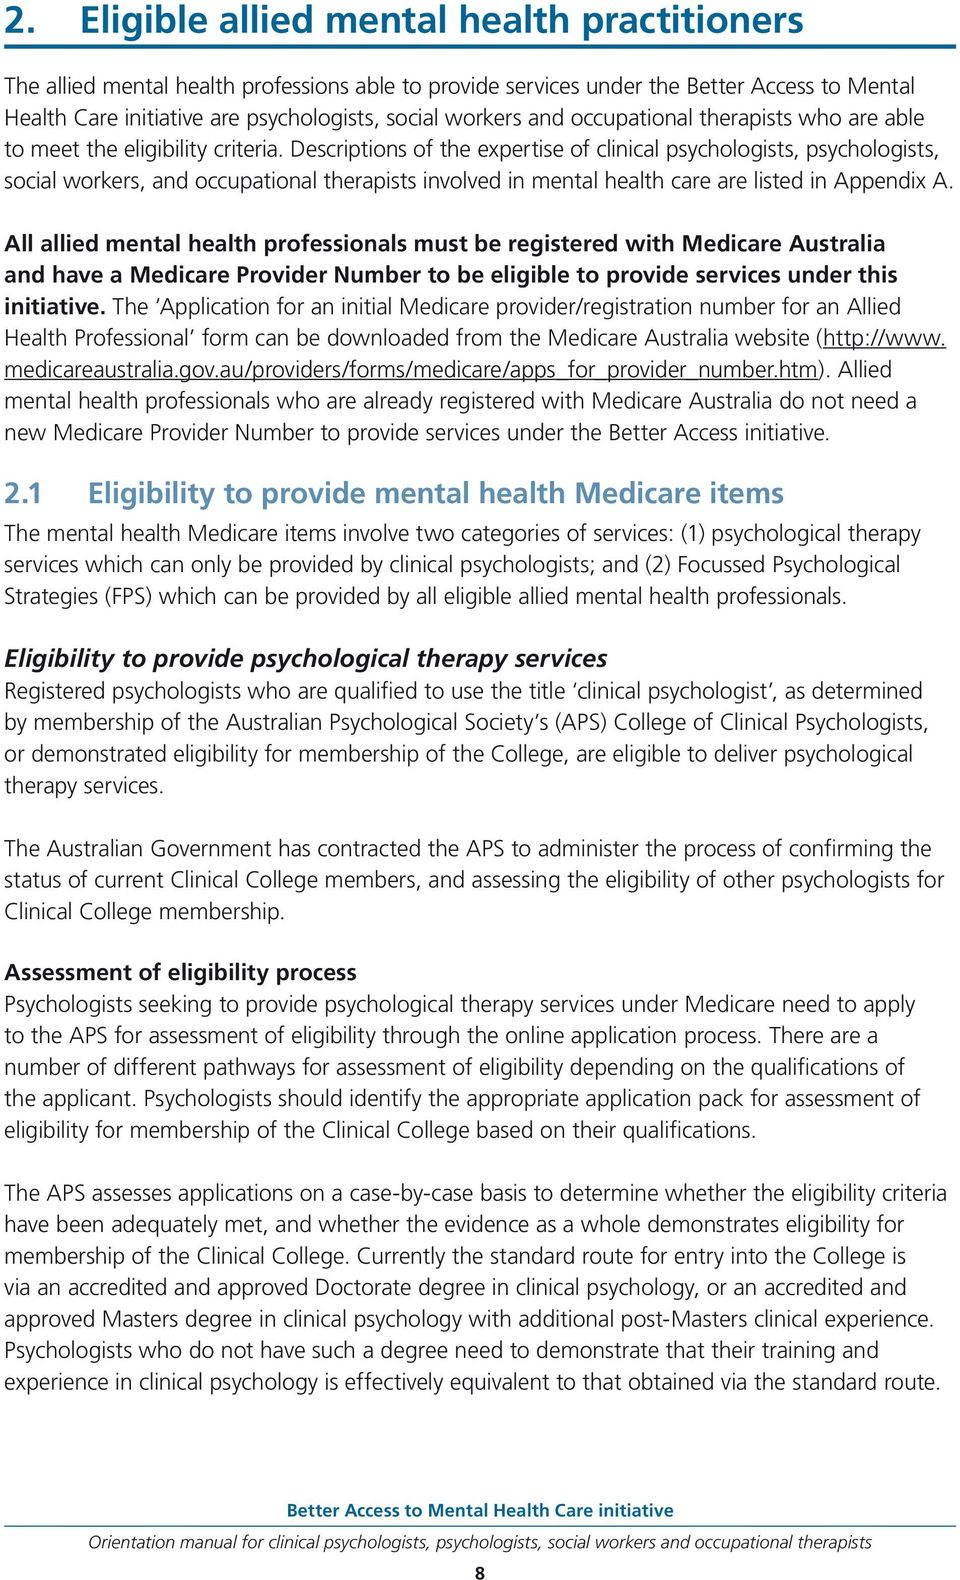 Better Access To Mental Health Care Initiative Pdf